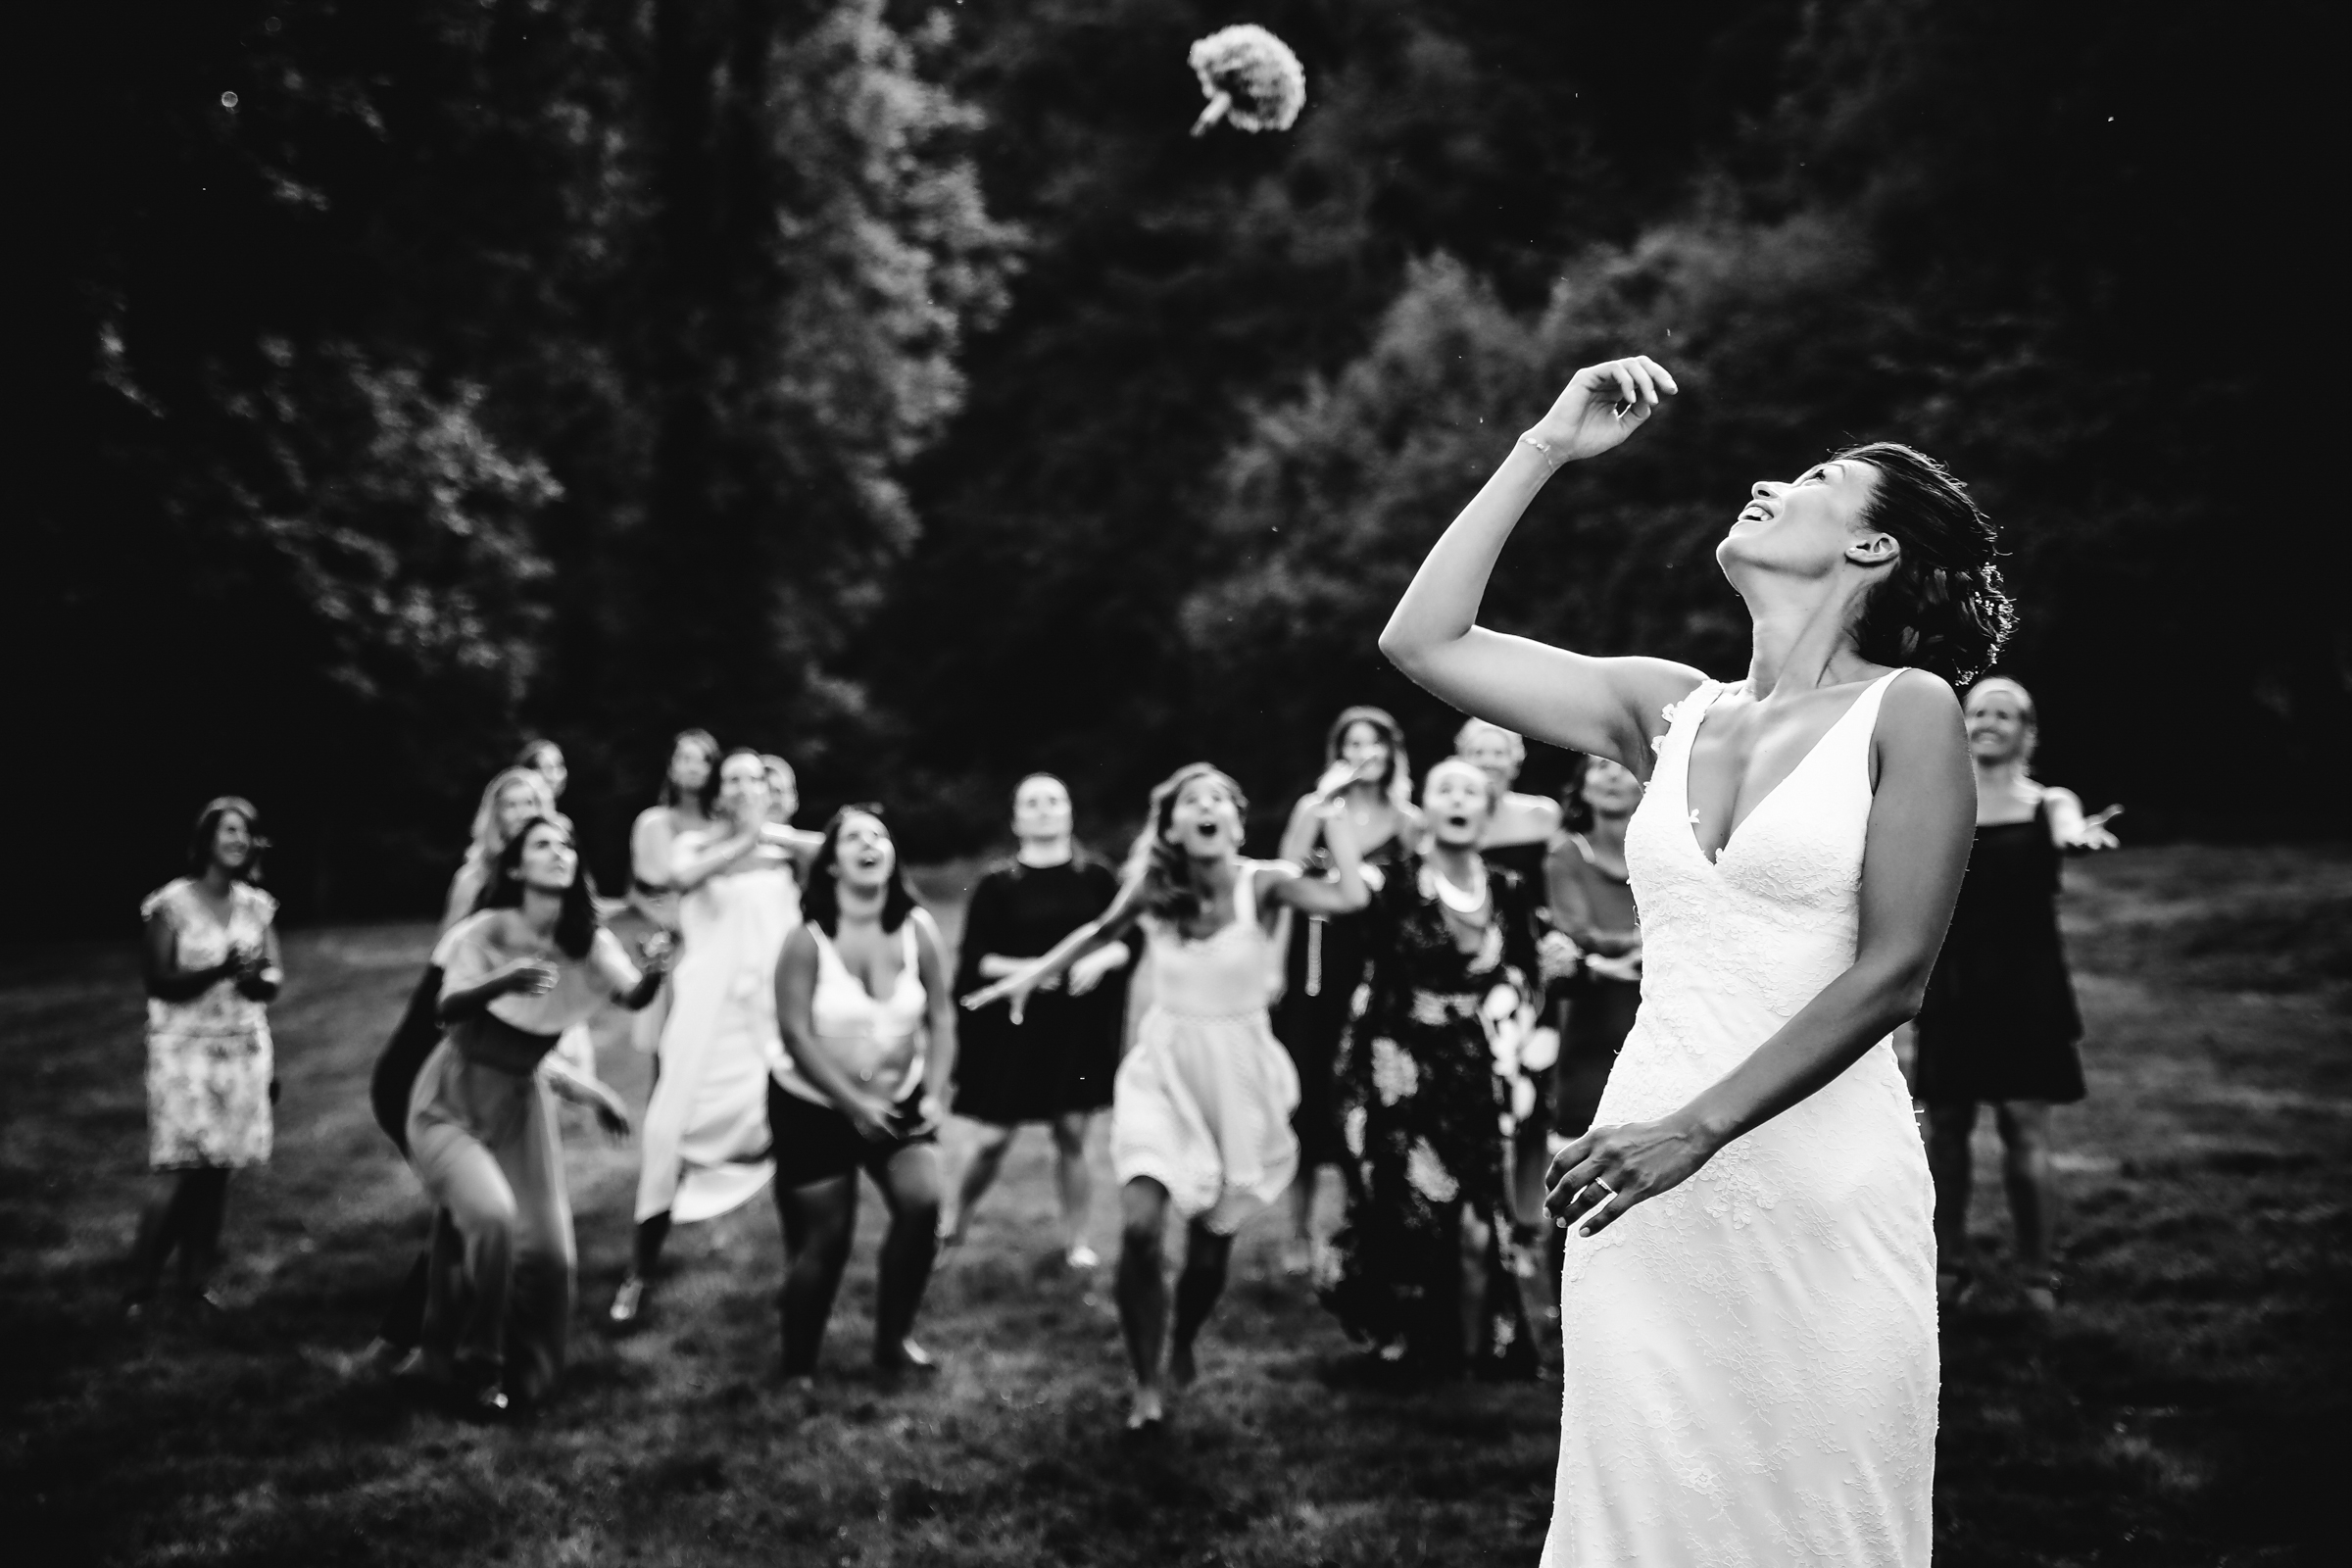 Bride looks over her shoulder while she throws her bouquet - photo by Julien Laurent Georges - wedding photographer in France